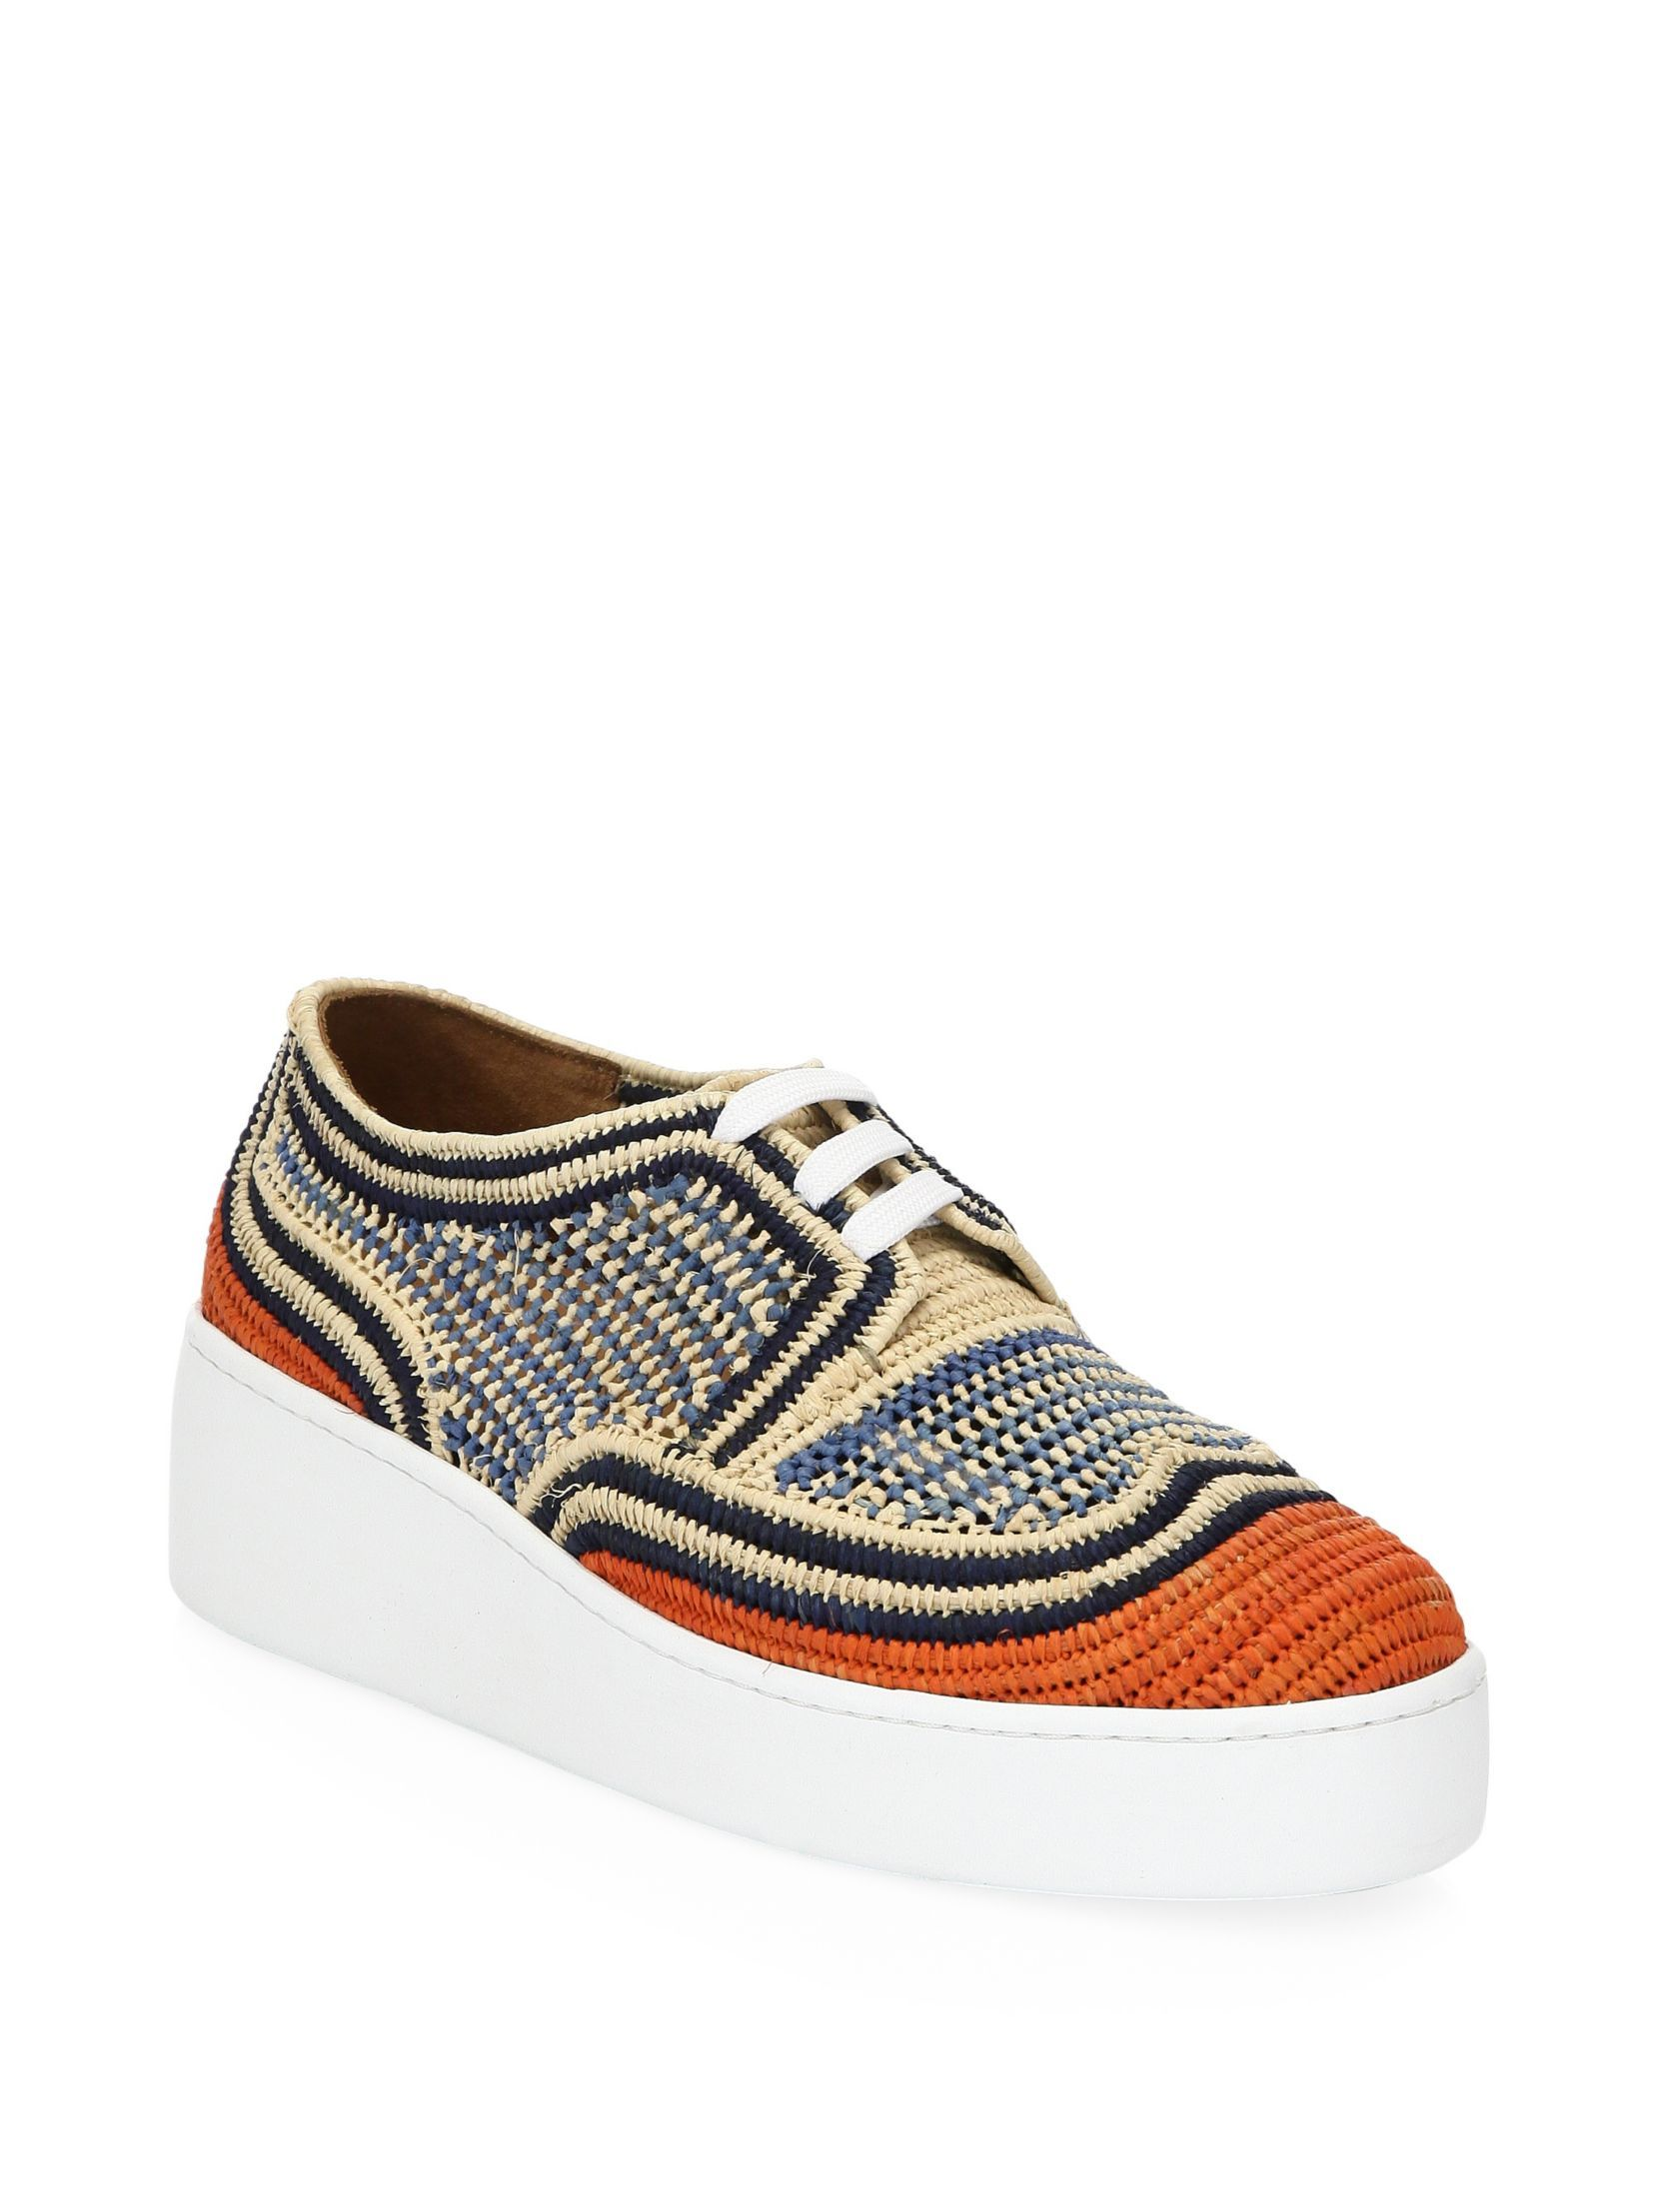 Robert Clergerie Lace up sneakers U1tp3OAM